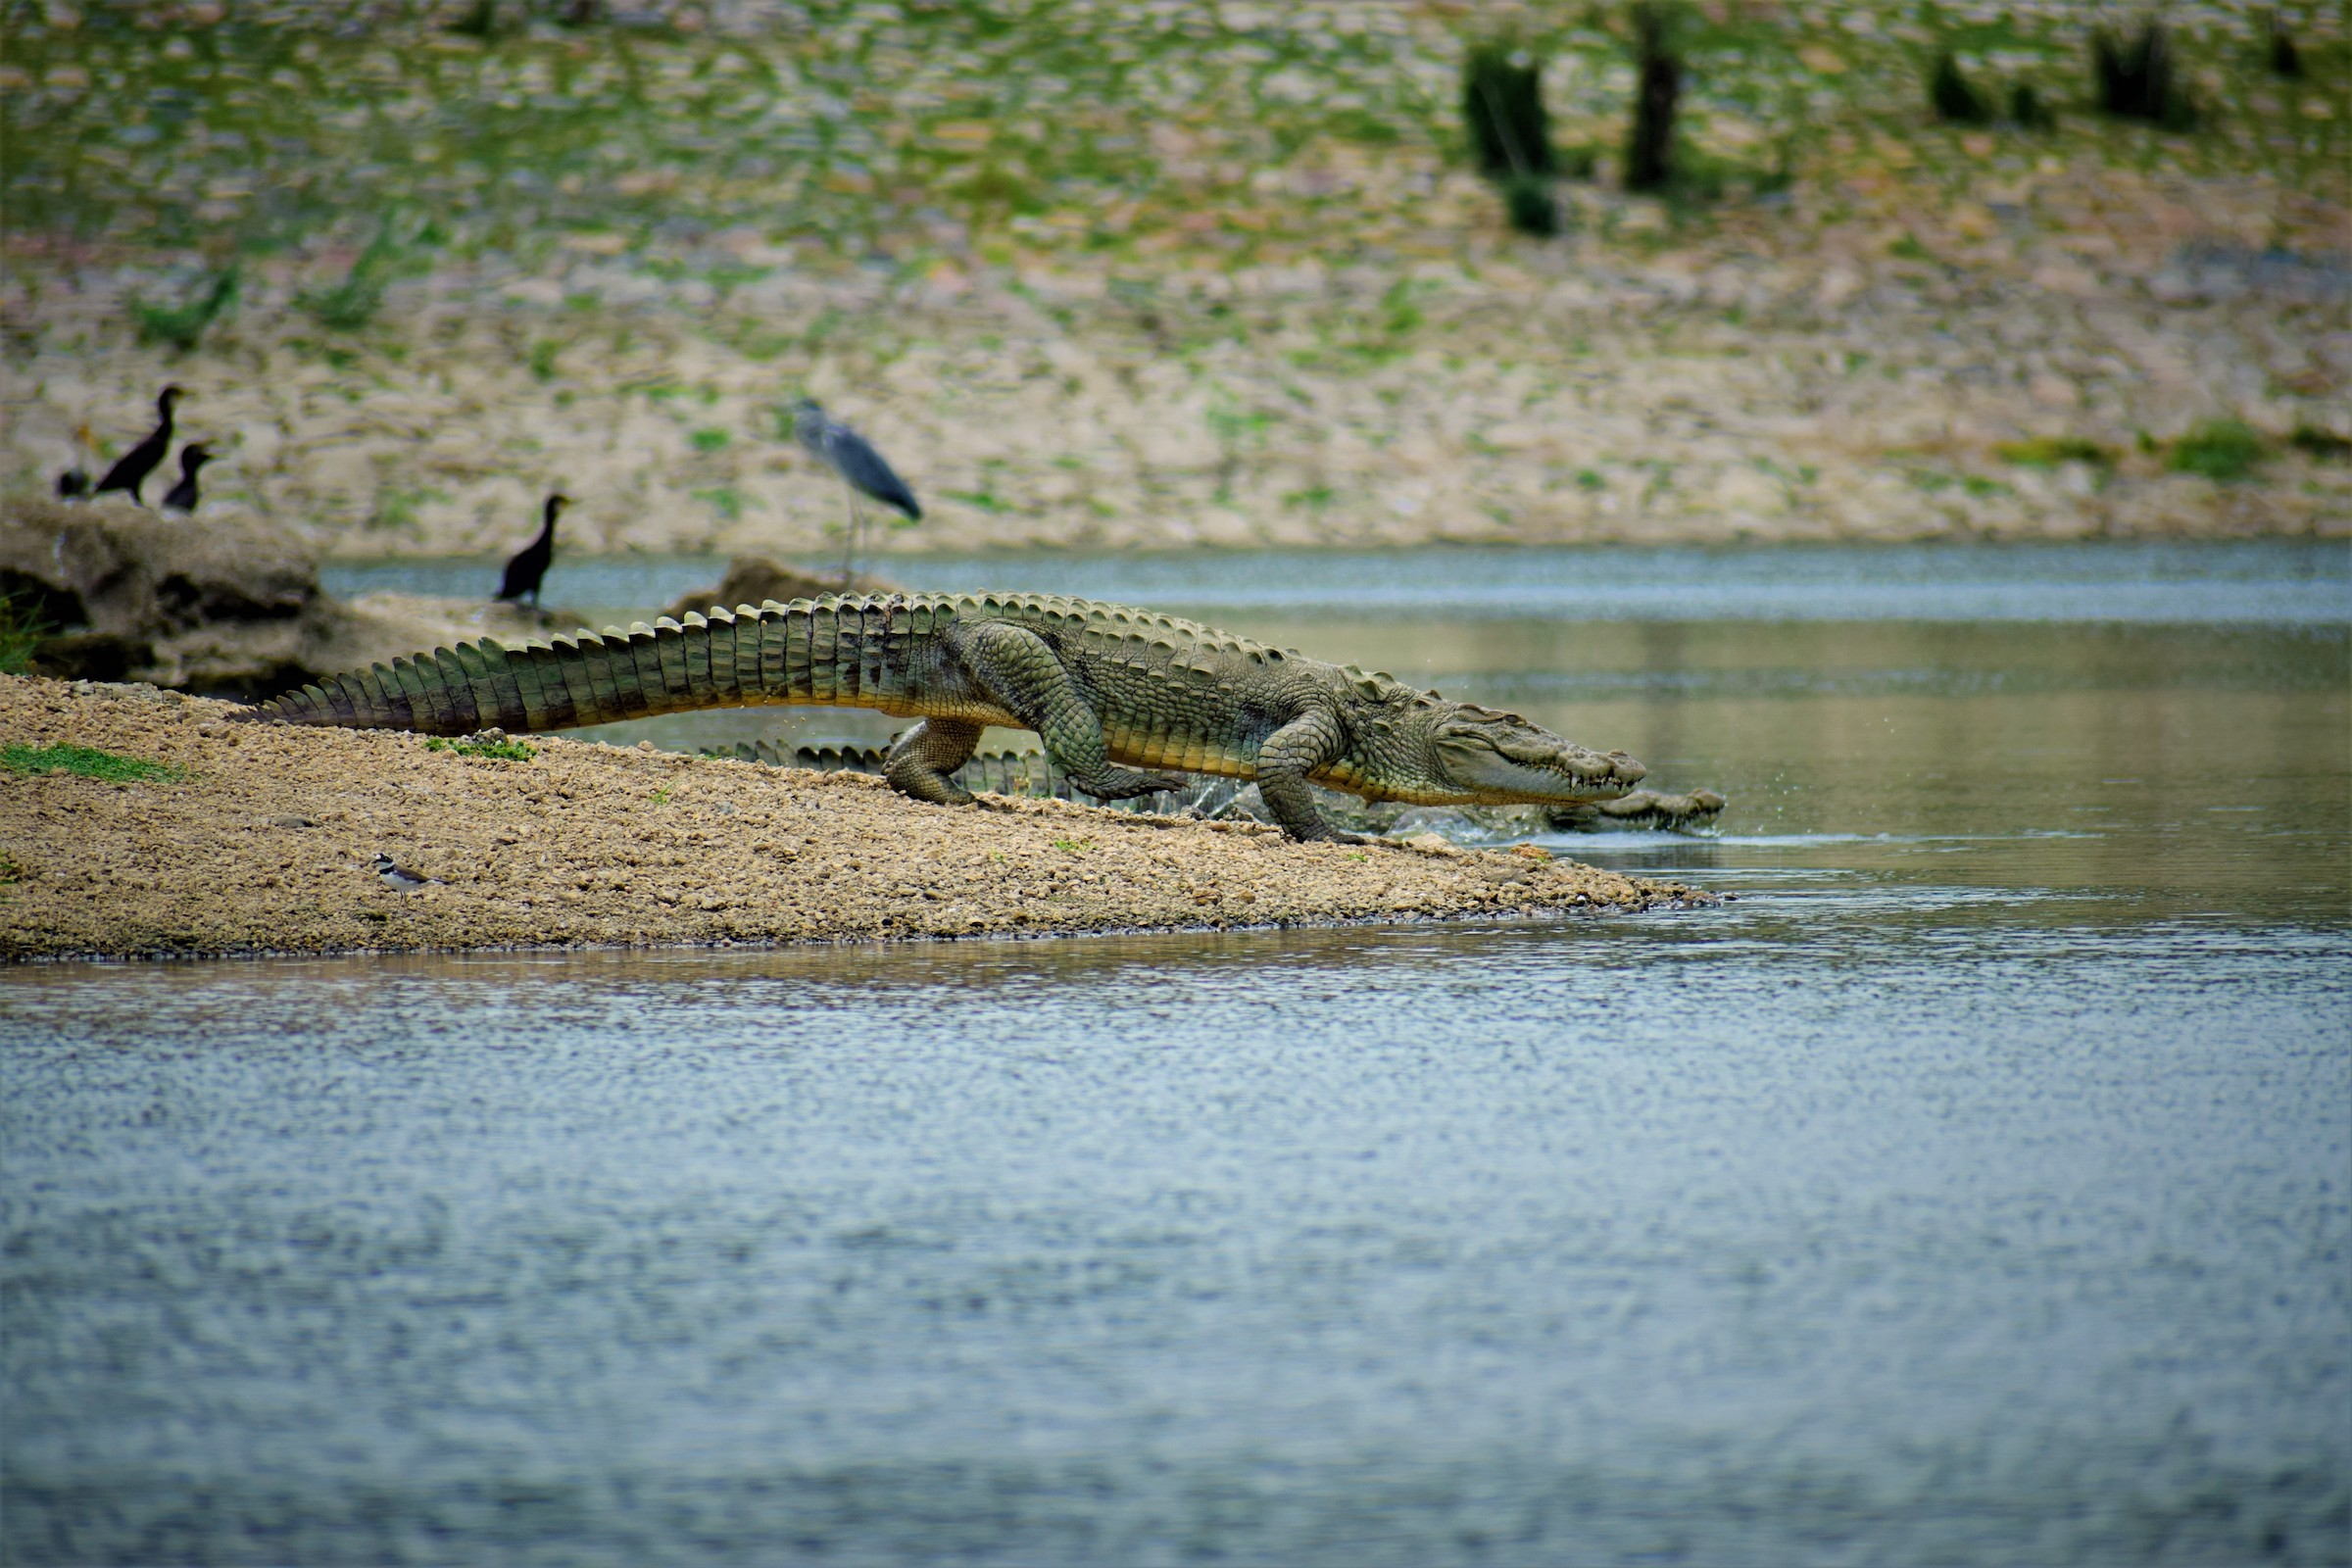 Marsh crocodiles (Crocodylus palustris) can be seen around reservoirs of dams and anicuts within the sanctuary. In the winter of 2018 Bishnoi counted around 50 near the Seli dam, where they were basking in the warm sunshine along the banks of the reservoir.